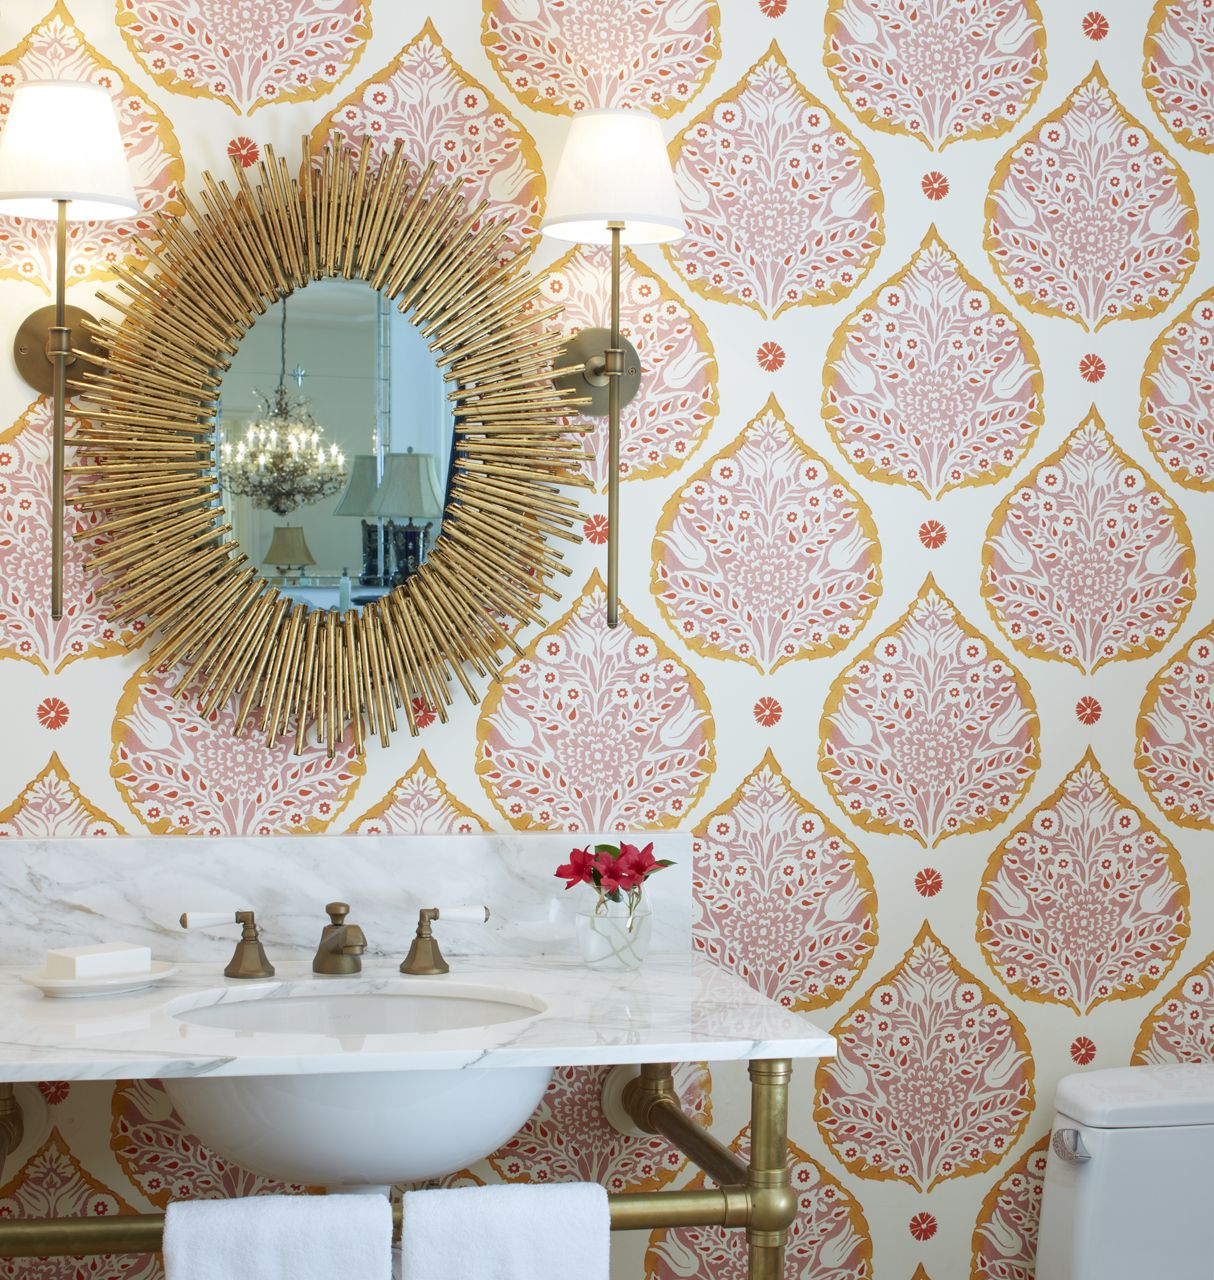 Modern colorful powder room with artisanal hand block